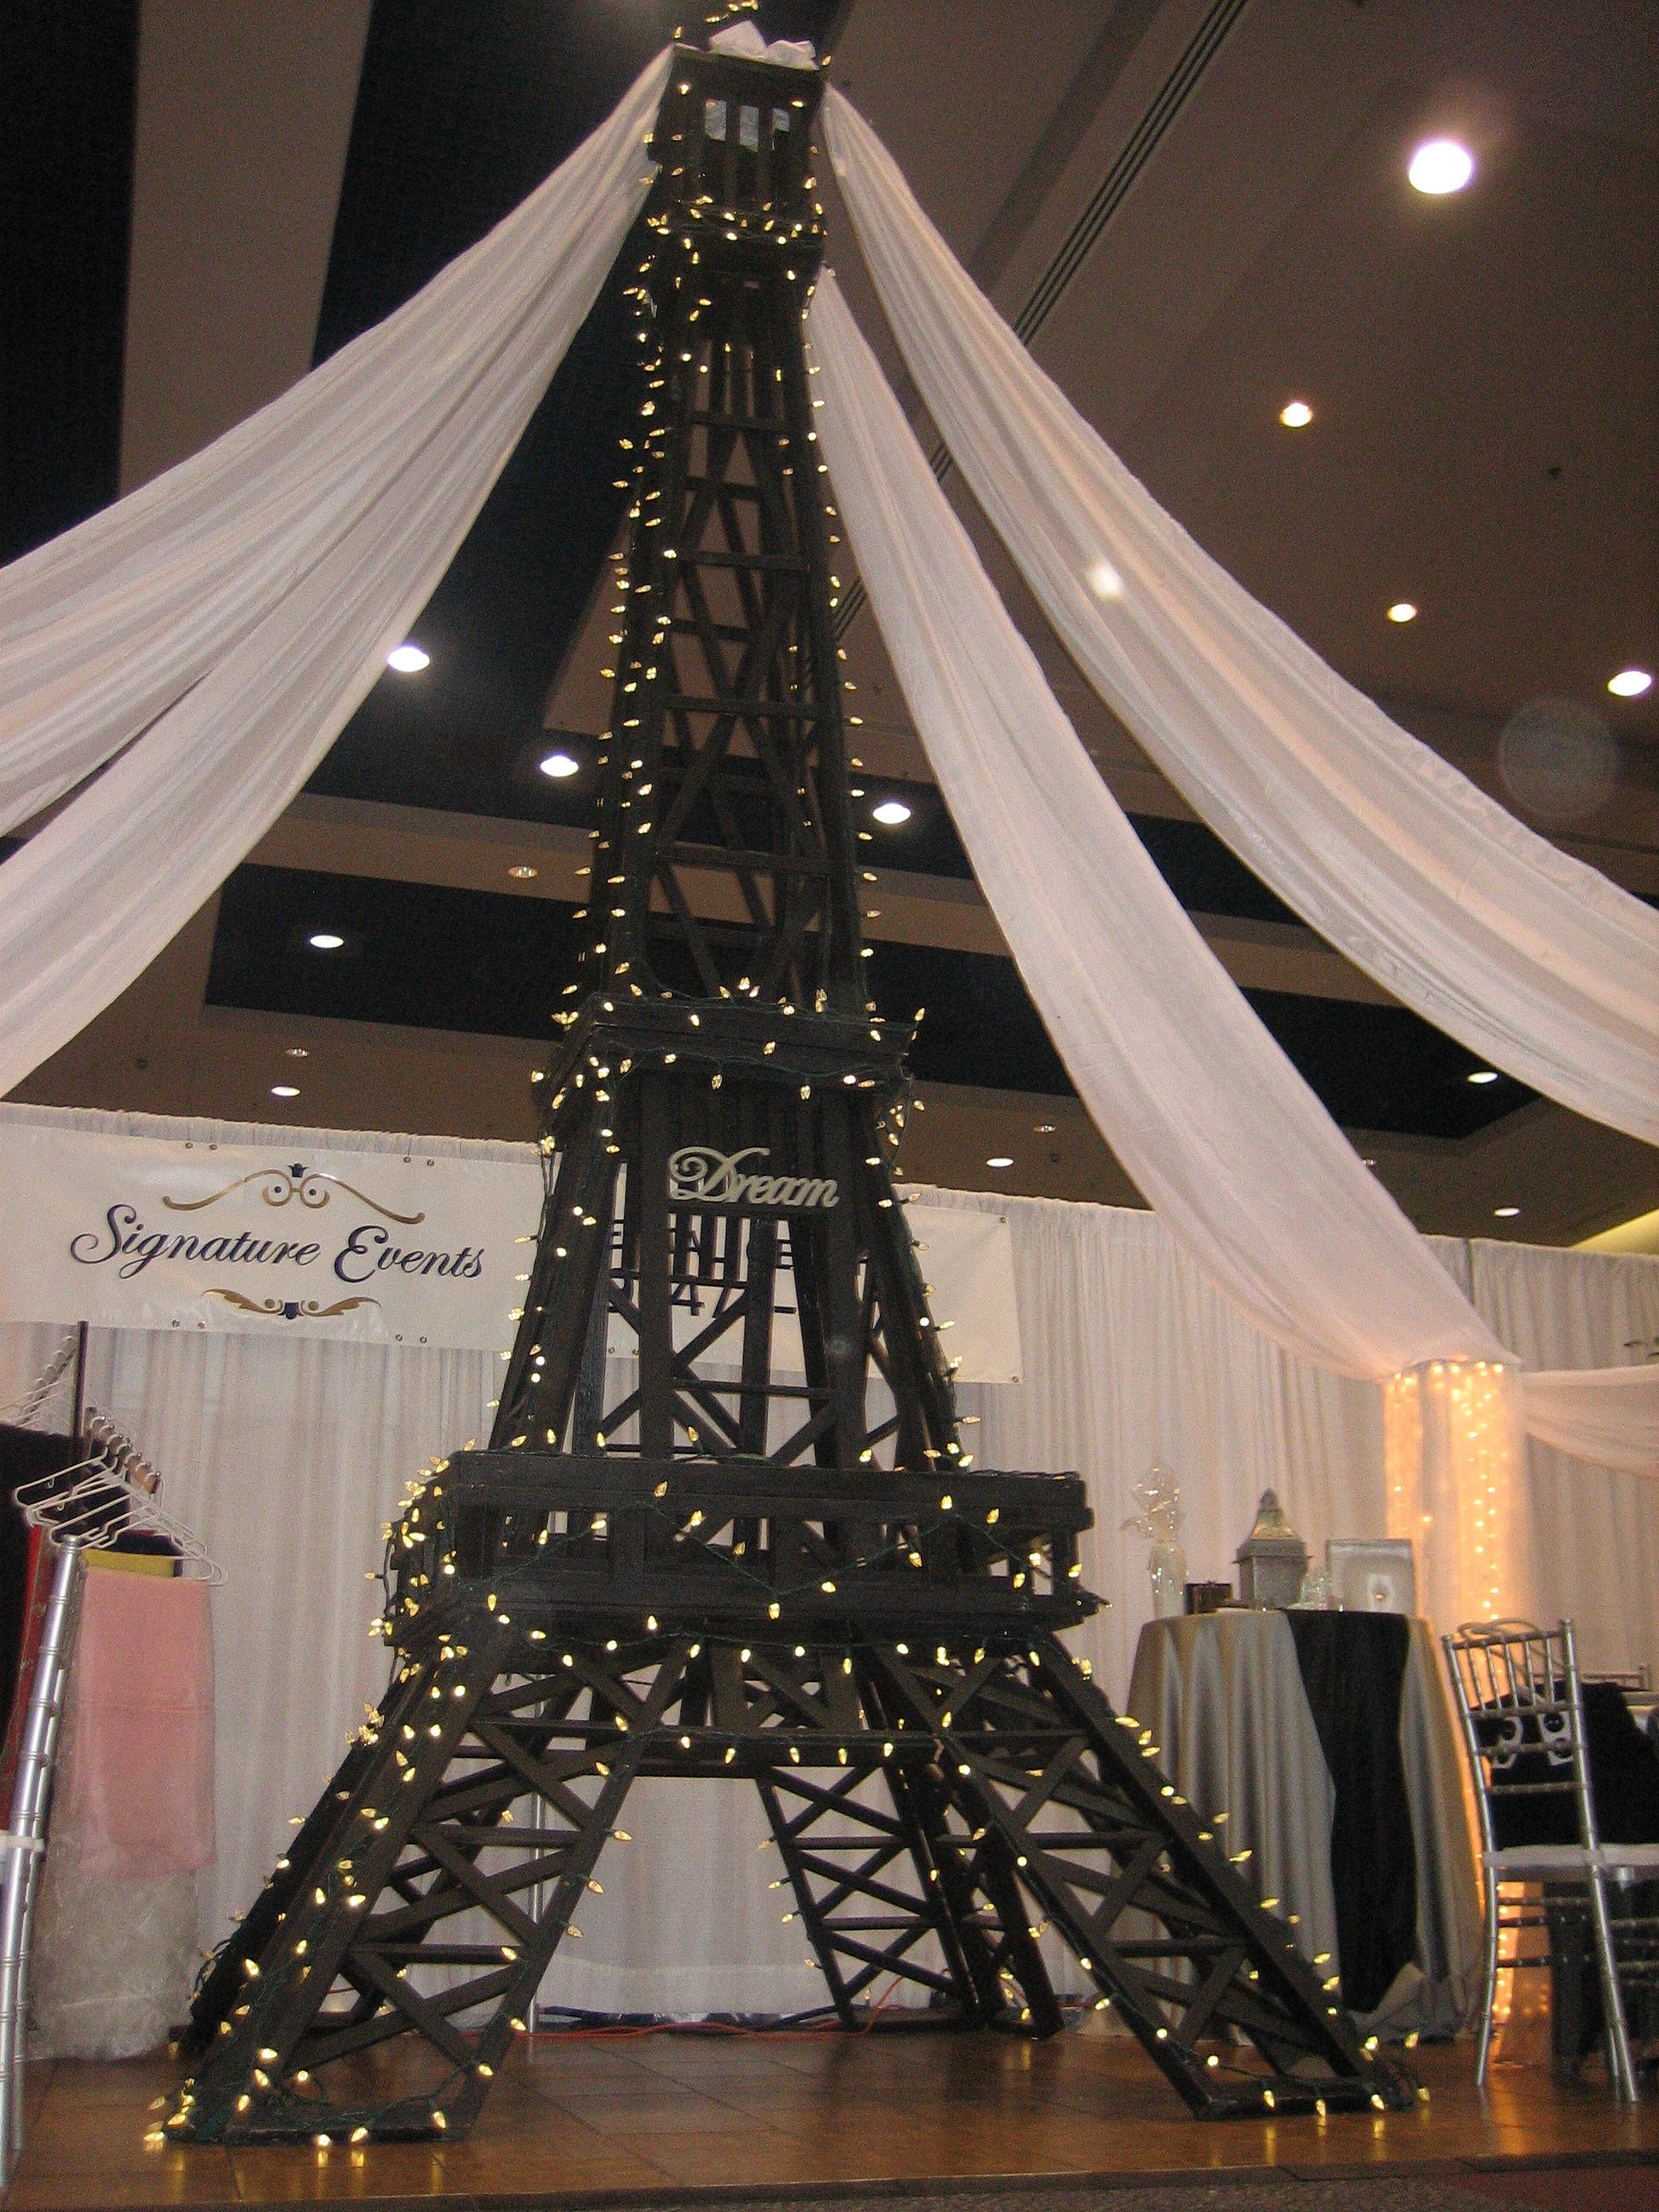 Eiffel Tower Party Favors | Eiffel Tower Decorations for Party | Eiffel Tower Centerpieces